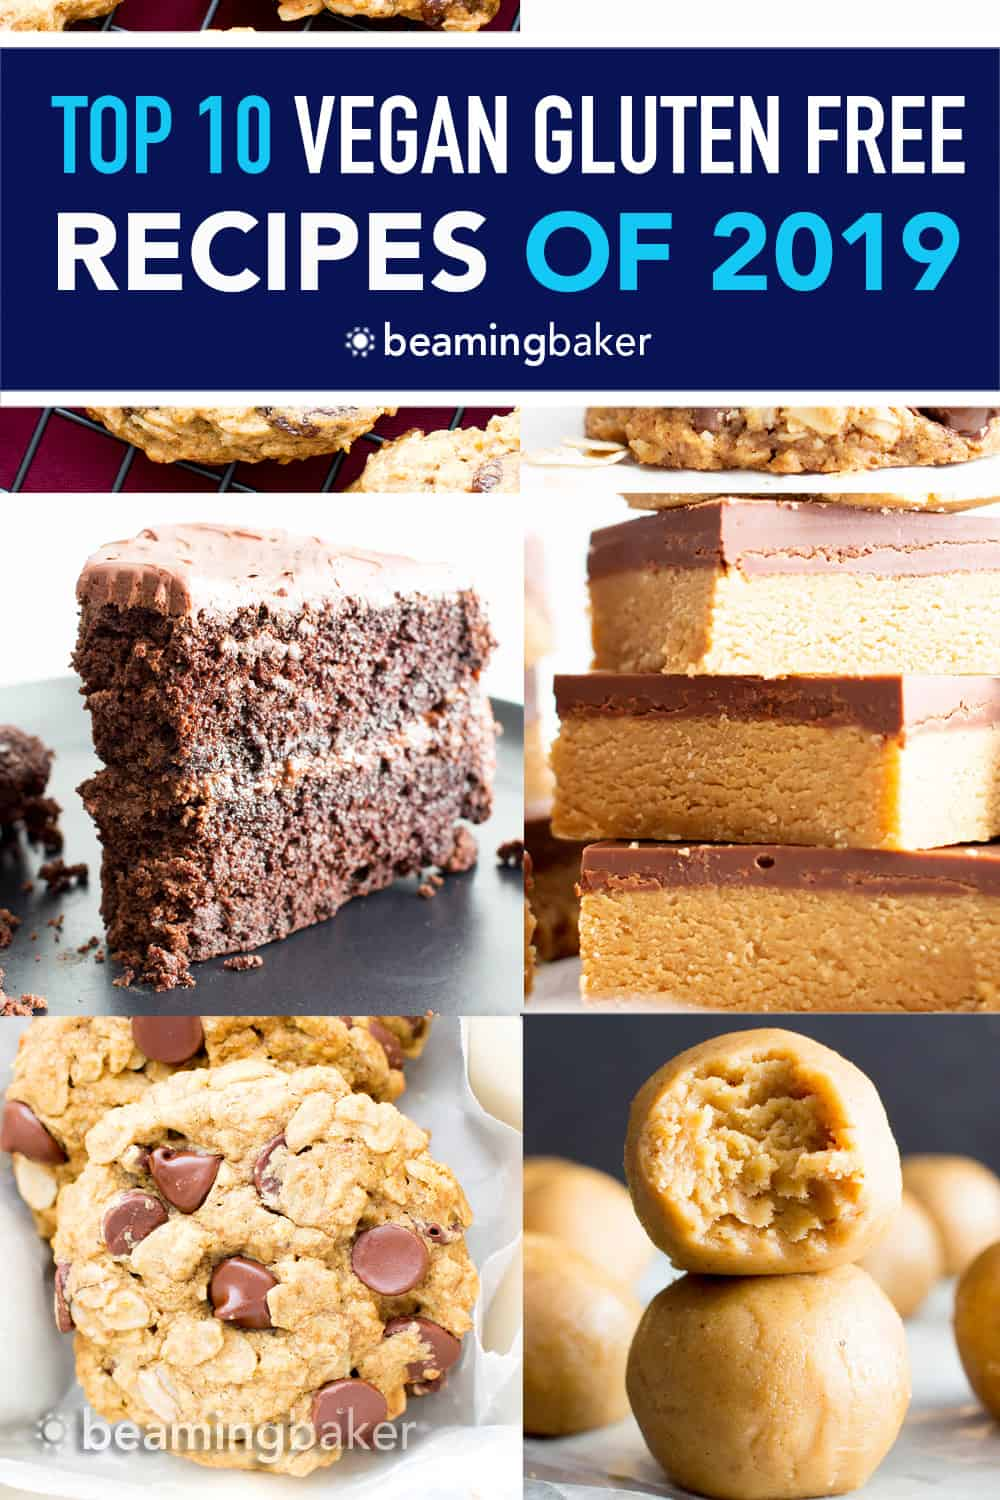 Top 10 Vegan Gluten Free Recipes (GF): join me as we countdown the most popular GF + vegan recipes of the year! Including: no bake treats, cookies, cake, muffins and more! #Vegan #GlutenFree #Paleo #Healthy | Recipes on BeamingBaker.com